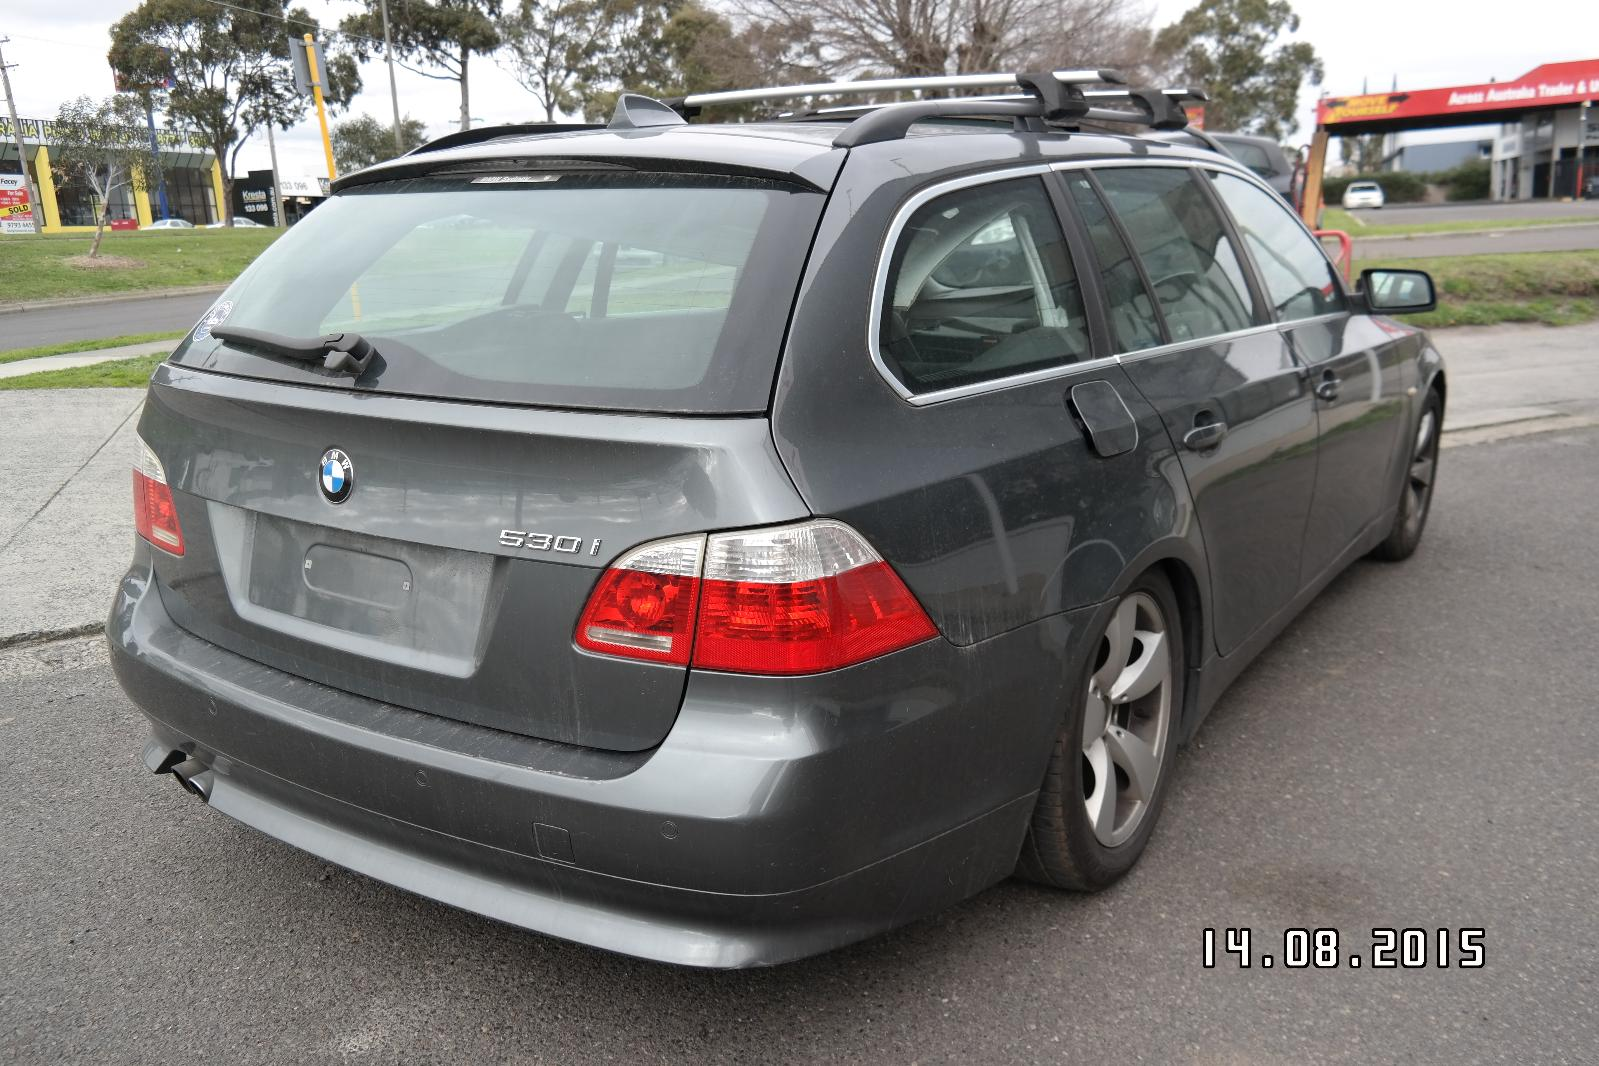 Bootlid/Tailgate 5 Series Bmw 2006